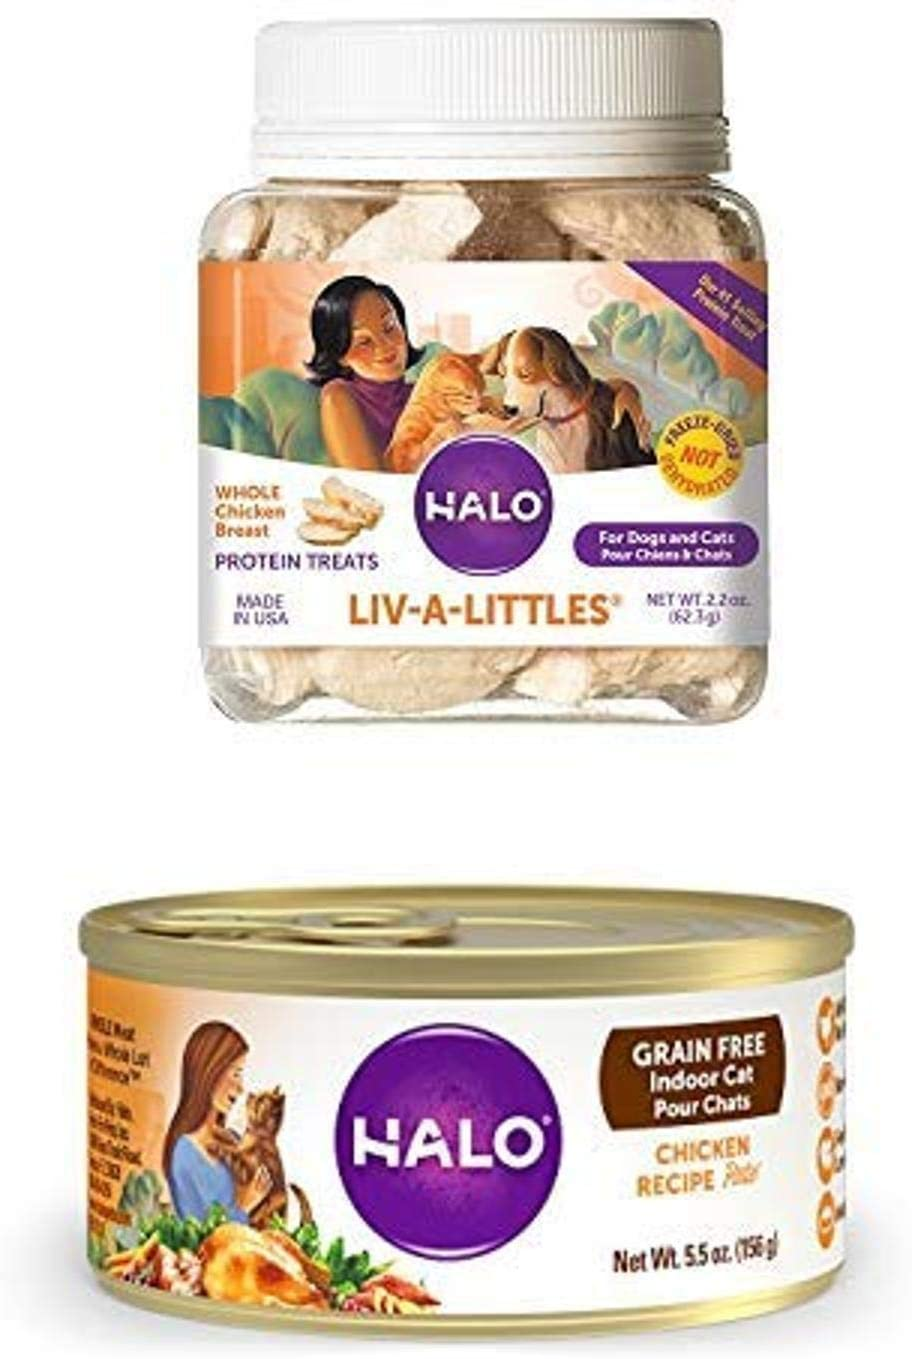 Halo Liv-A-Littles Grain Free Natural Dog Treats & Cat Treats, Freeze Dried Chicken Breast, 2.2-Ounce Plus Halo Grain Free Natural Wet Cat Food, Indoor Chicken Recipe, 5.5-Ounce Can (Pack of 12)